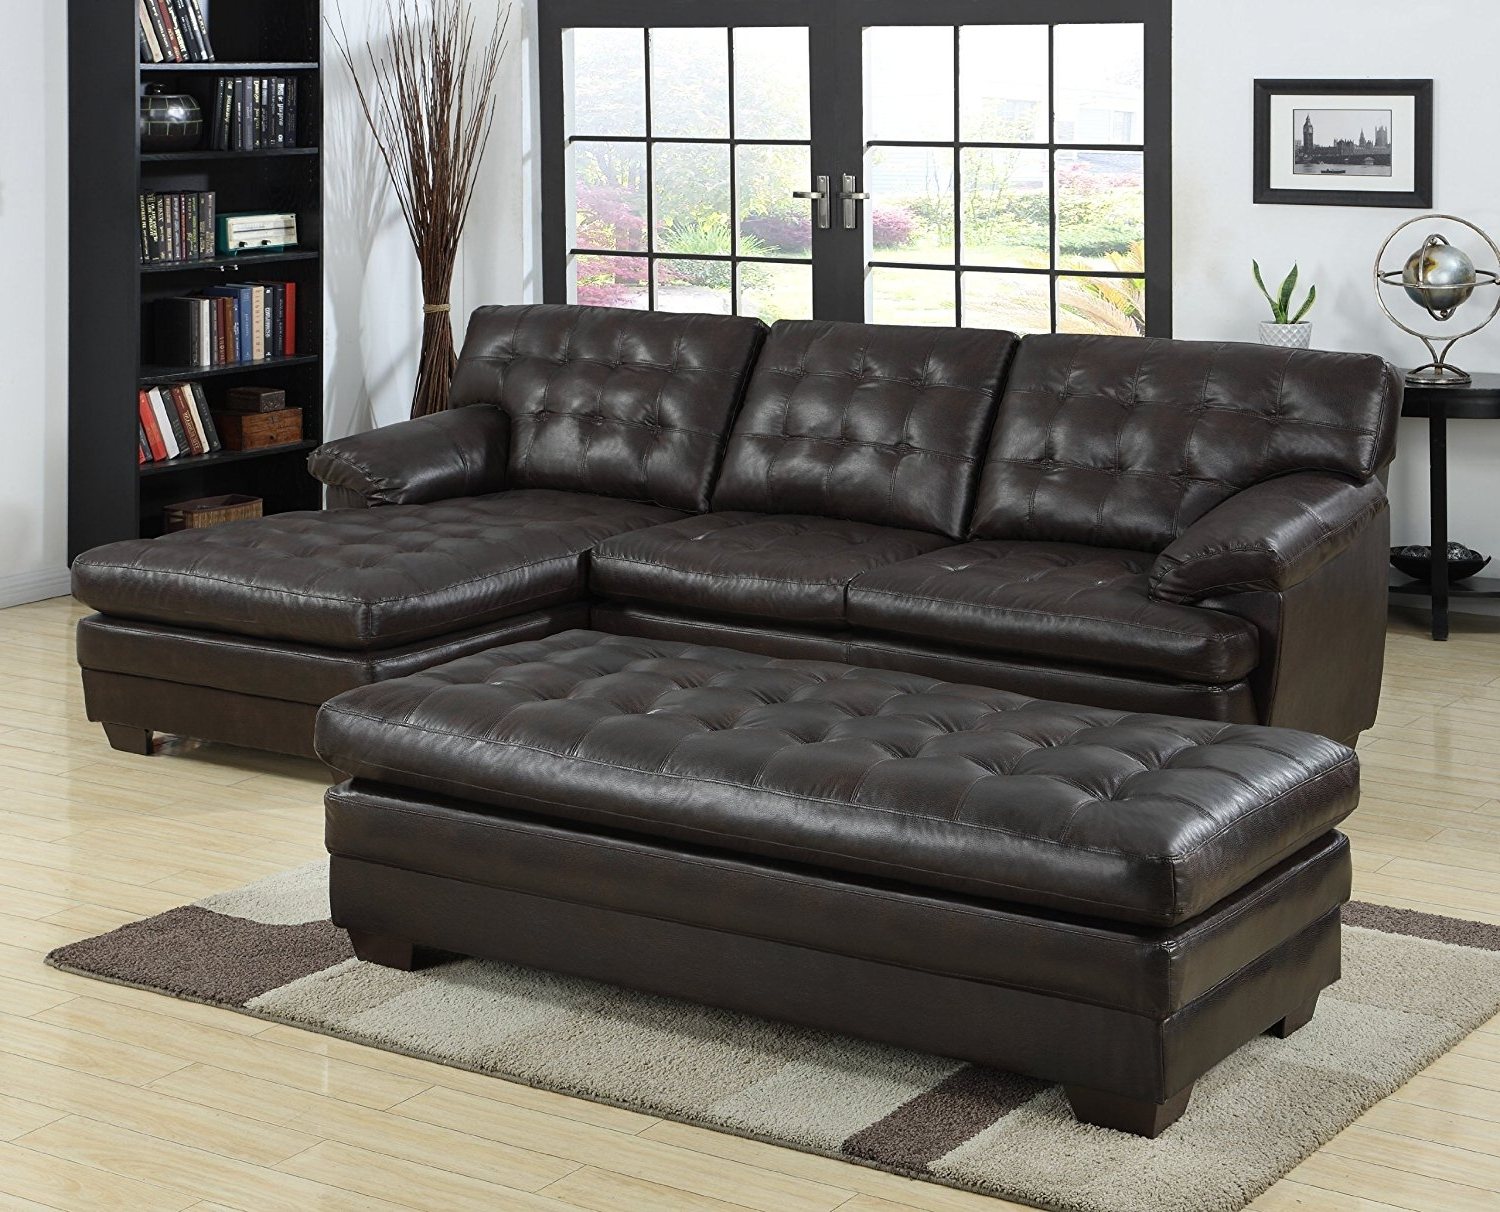 Well Known Tufted Sectionals Sofa With Chaise Intended For Amazon: Homelegance 9739 Channel Tufted 2 Piece Sectional Sofa (View 9 of 15)